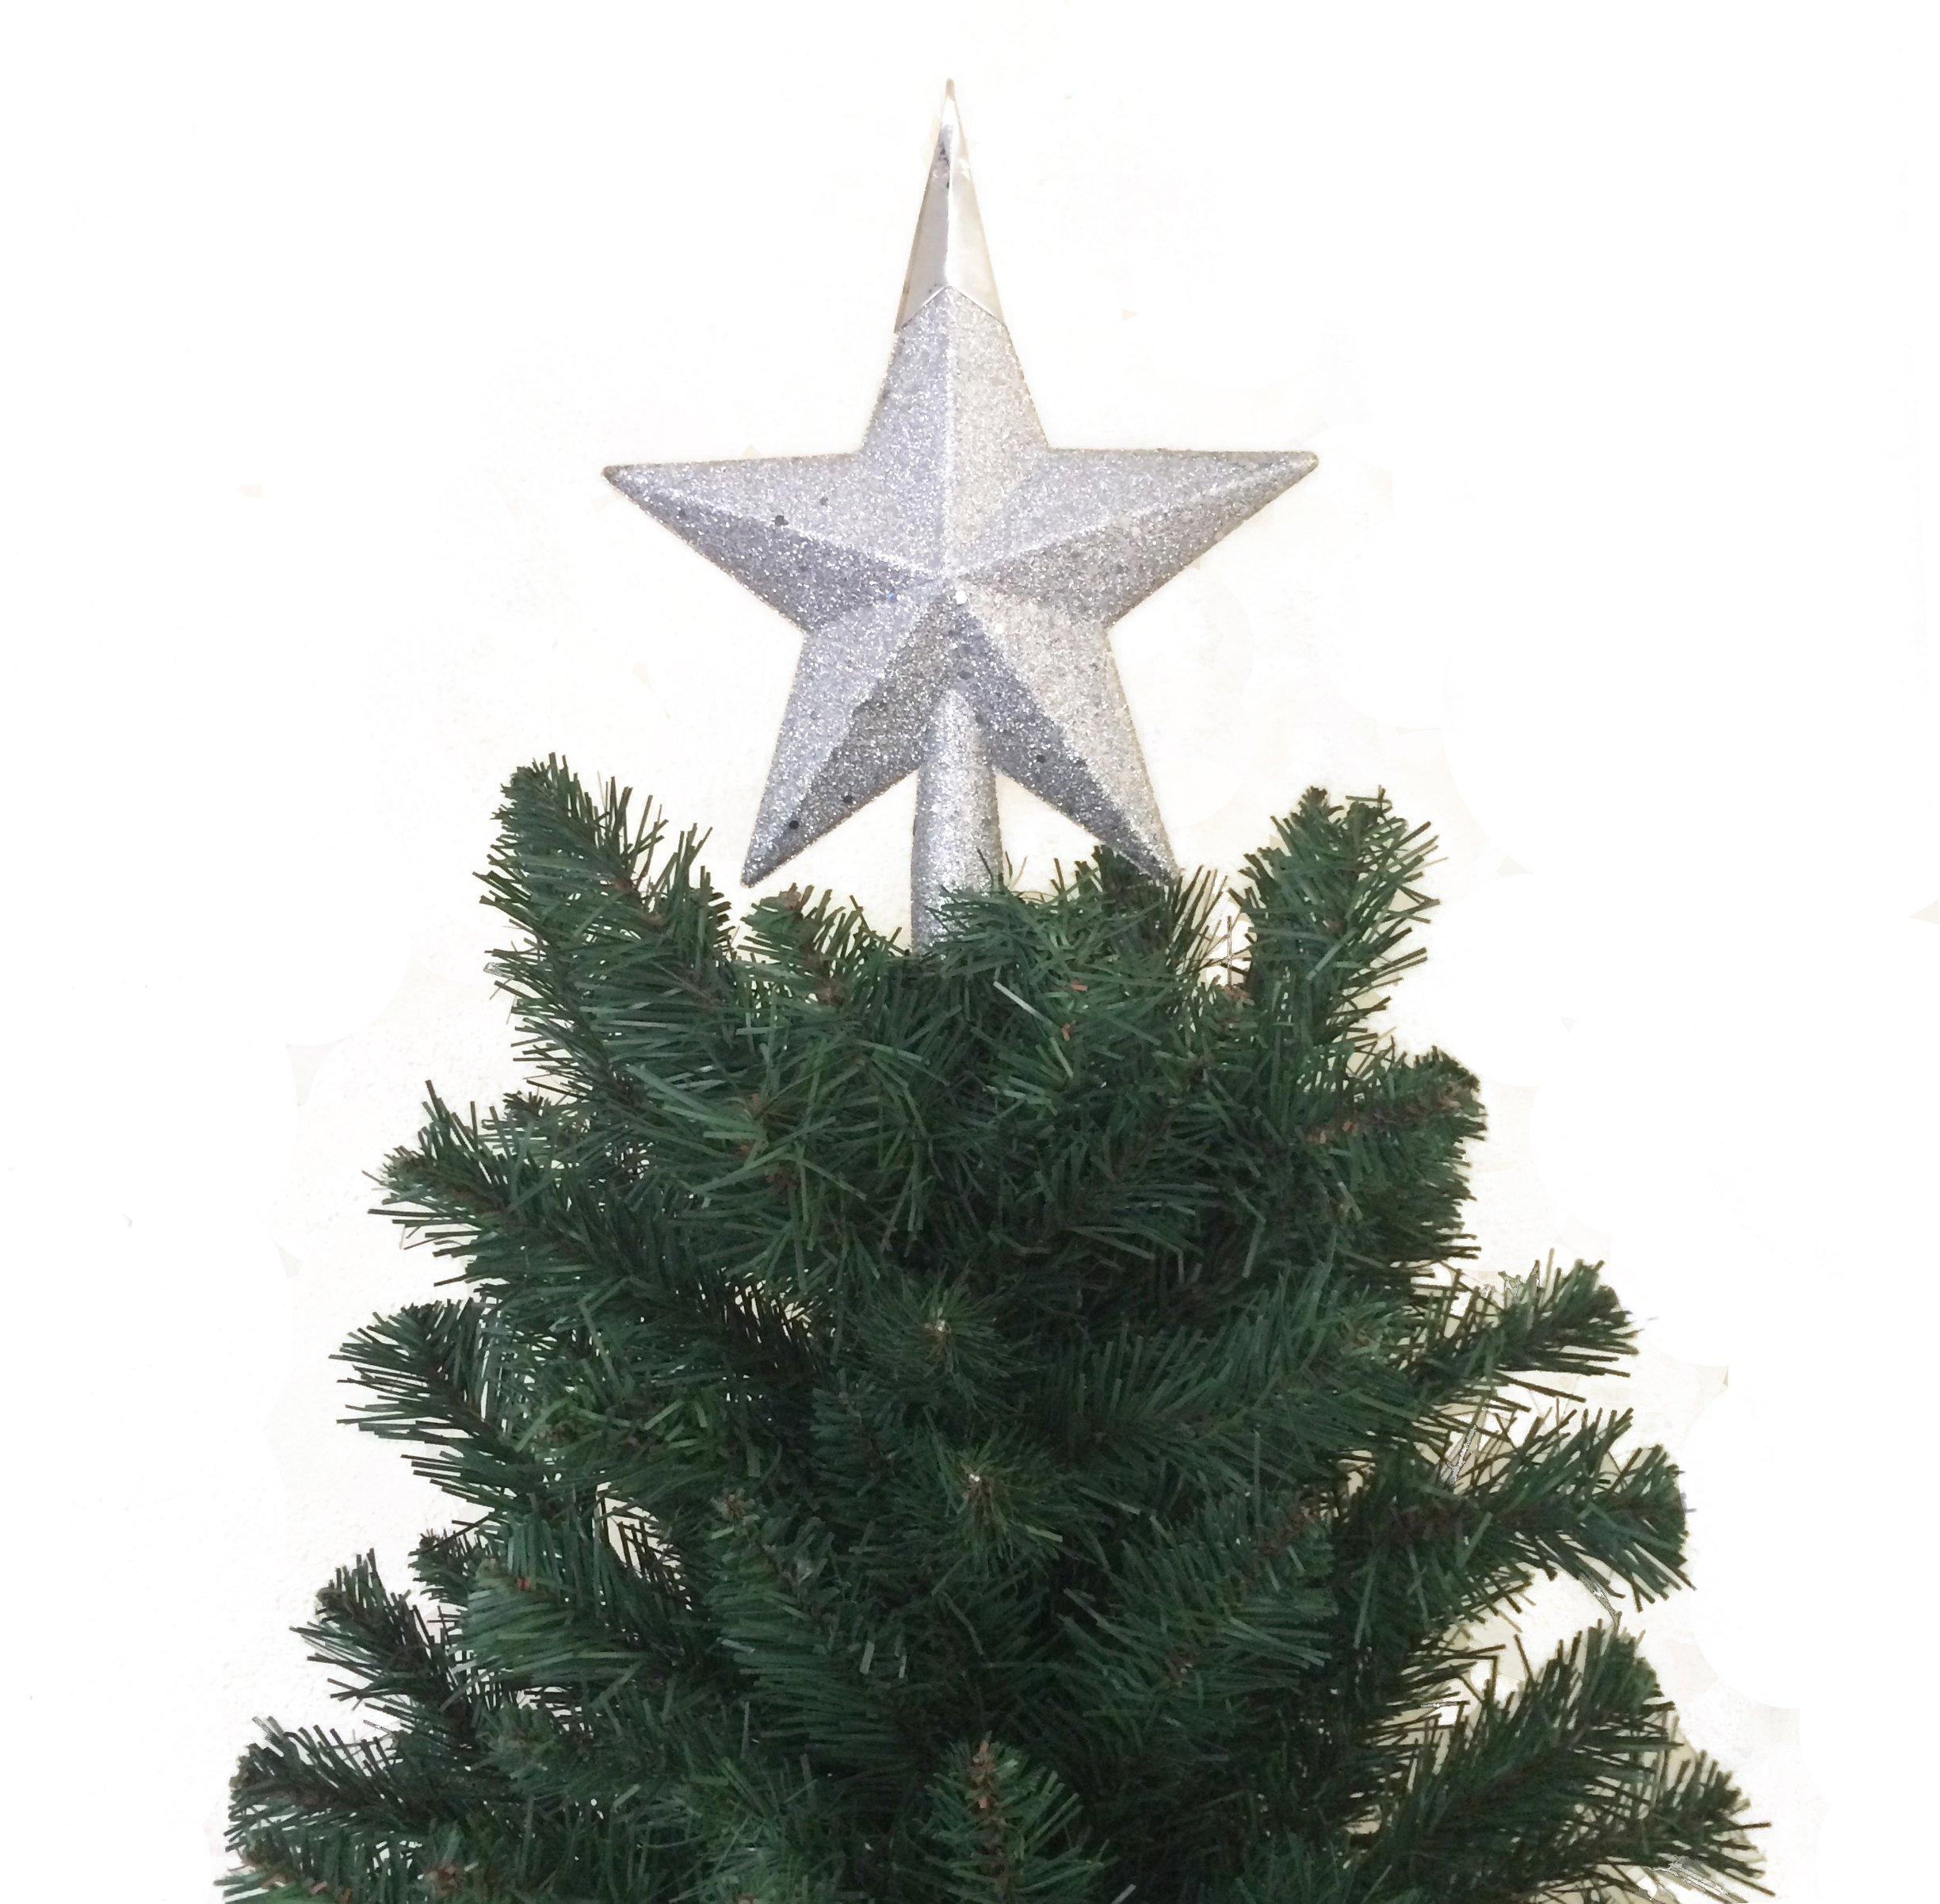 7.8'' H Star Tree Topper With Glitter Christmas Tree Decoration - Silver